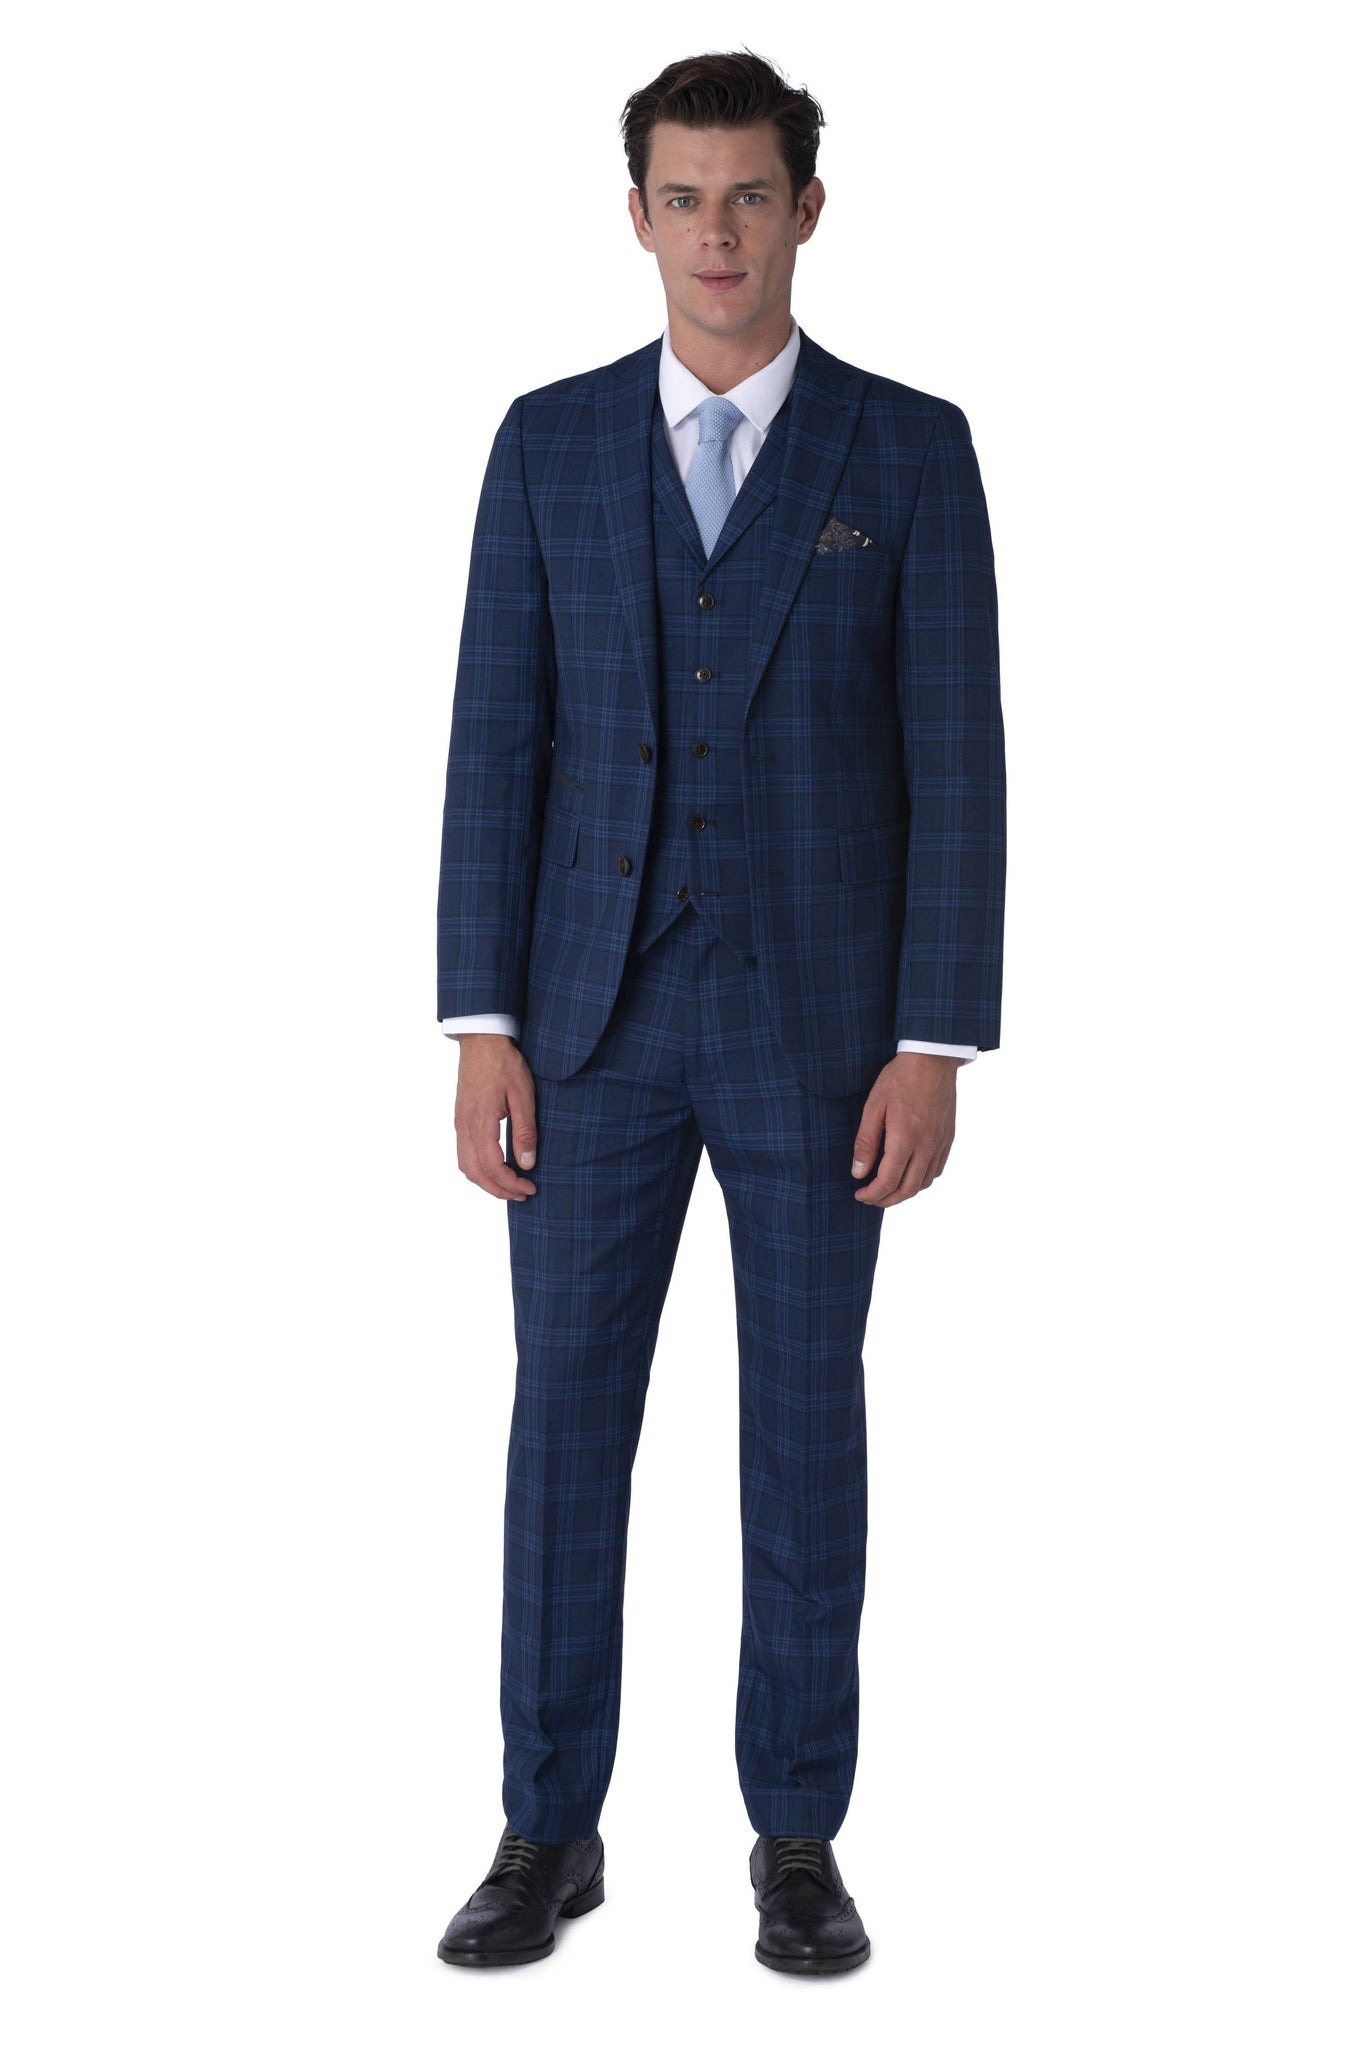 Front of BOBBY Blue & Black Check Three Piece Suit